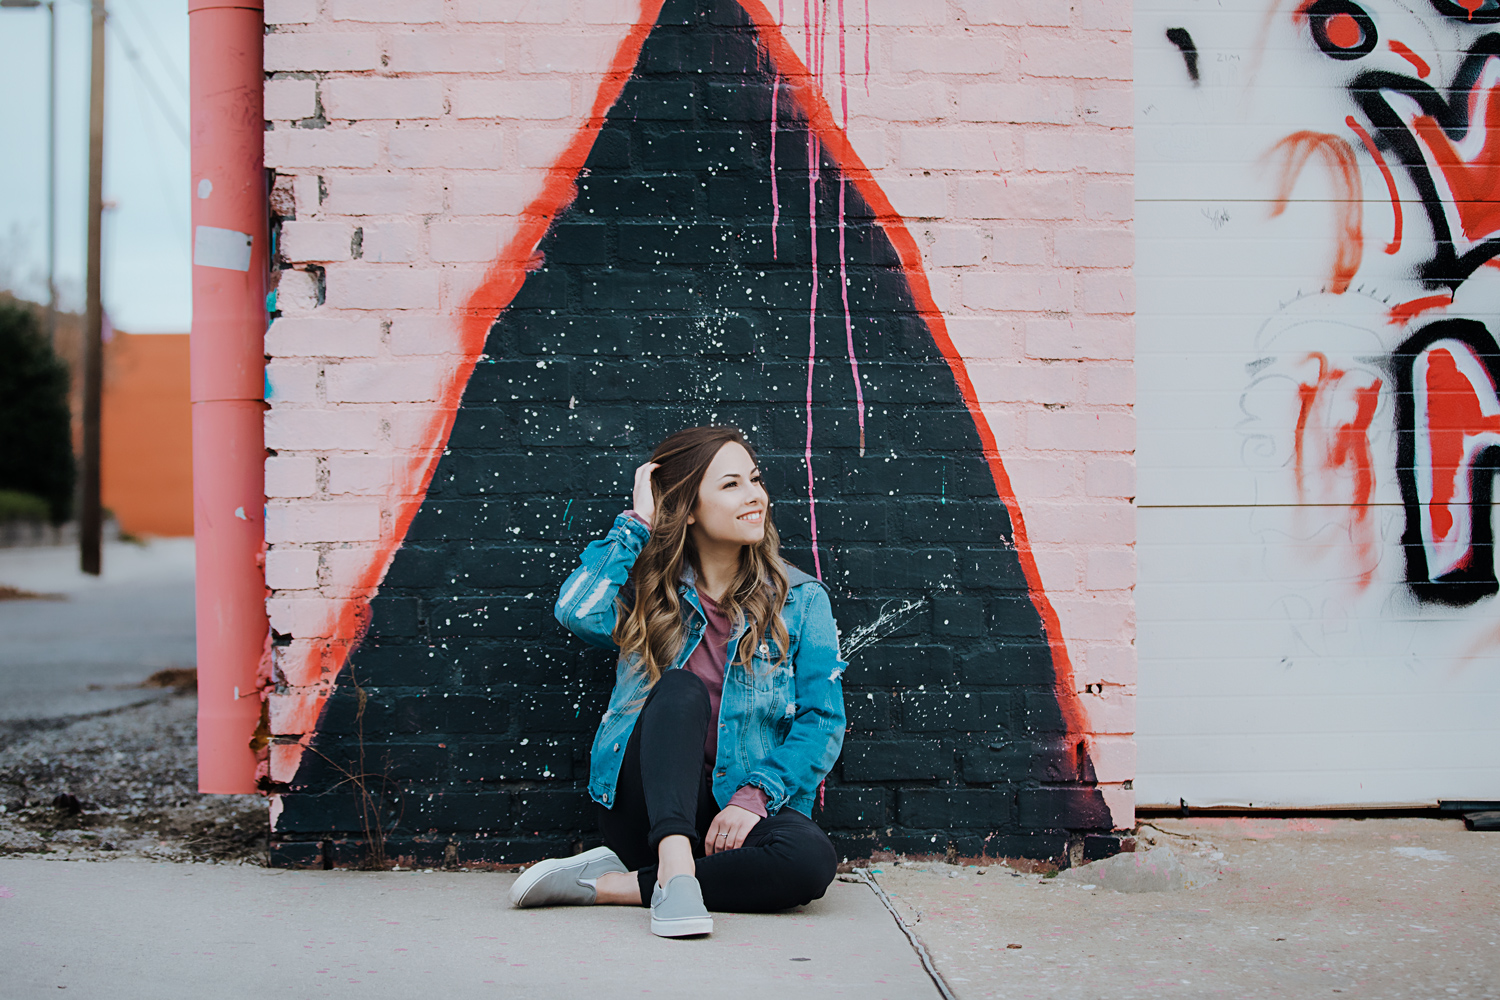 High school senior girl with long brown hair, wearing black pants and a jean jacket, sitting on concrete in from of a graffiti wall in Automobile Alley.